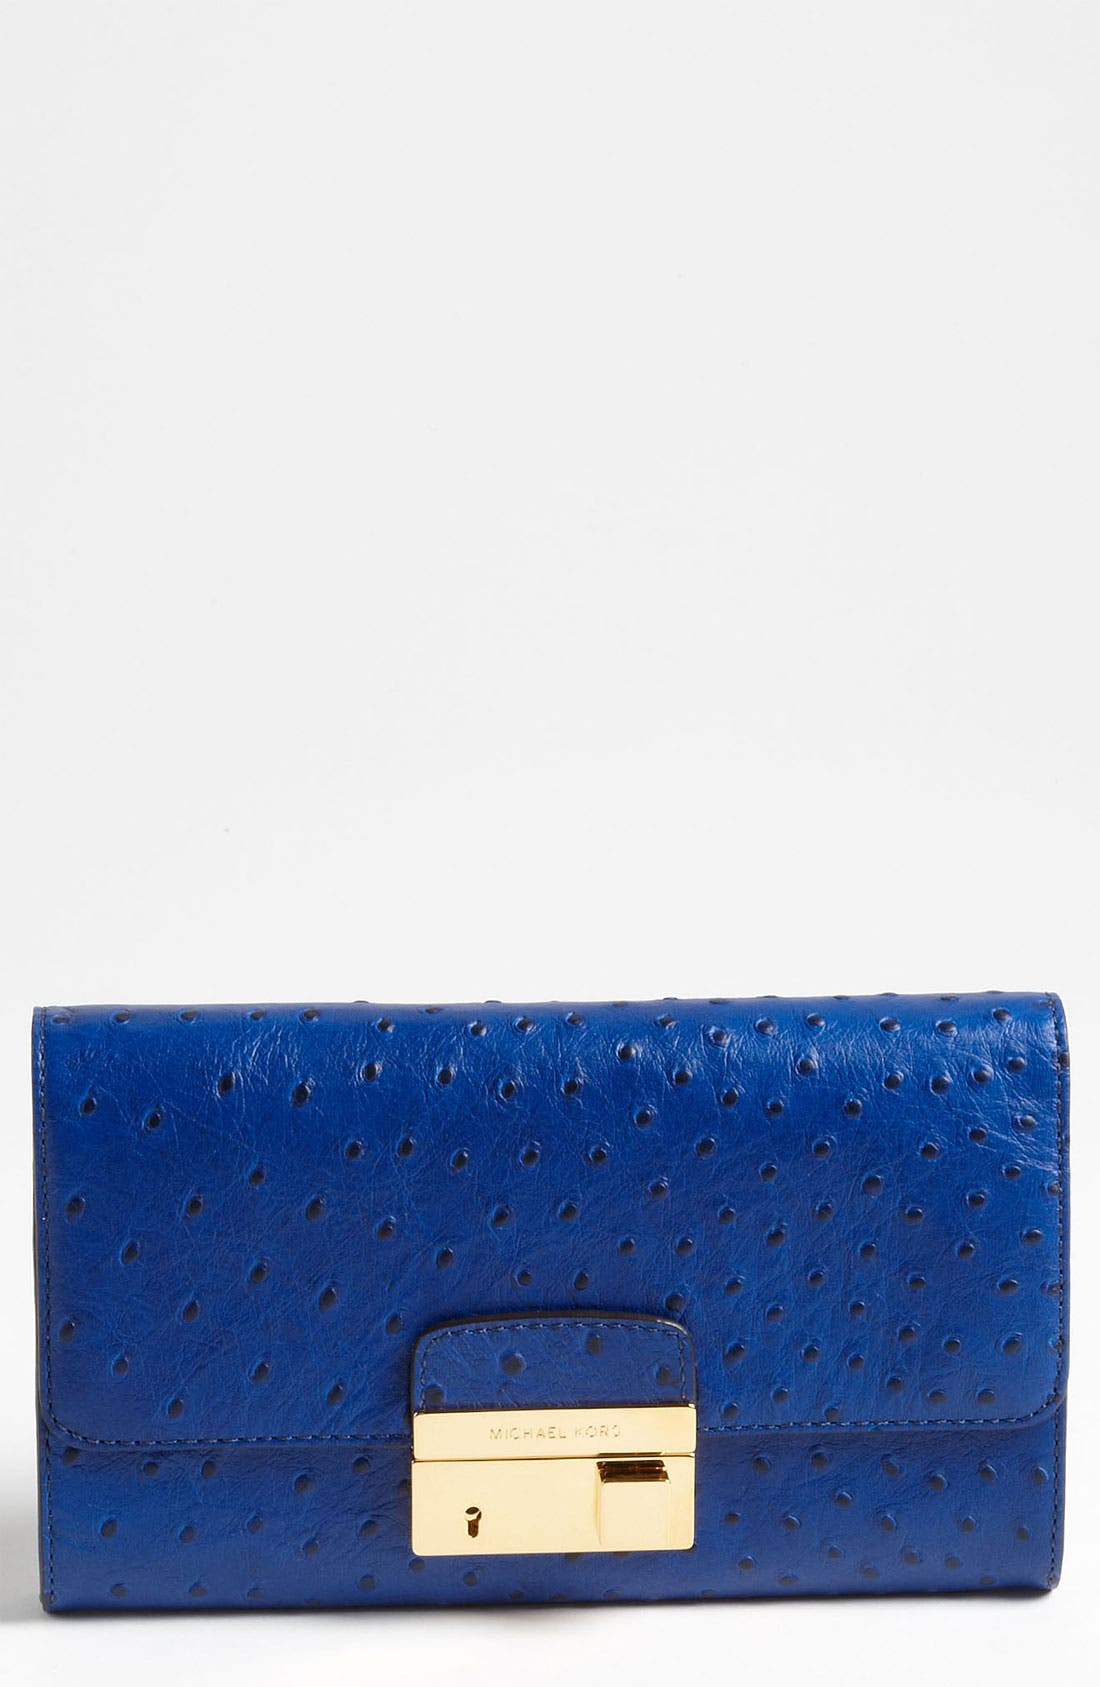 Alternate Image 1 Selected - Michael Kors 'Gia' Ostrich Embossed Clutch